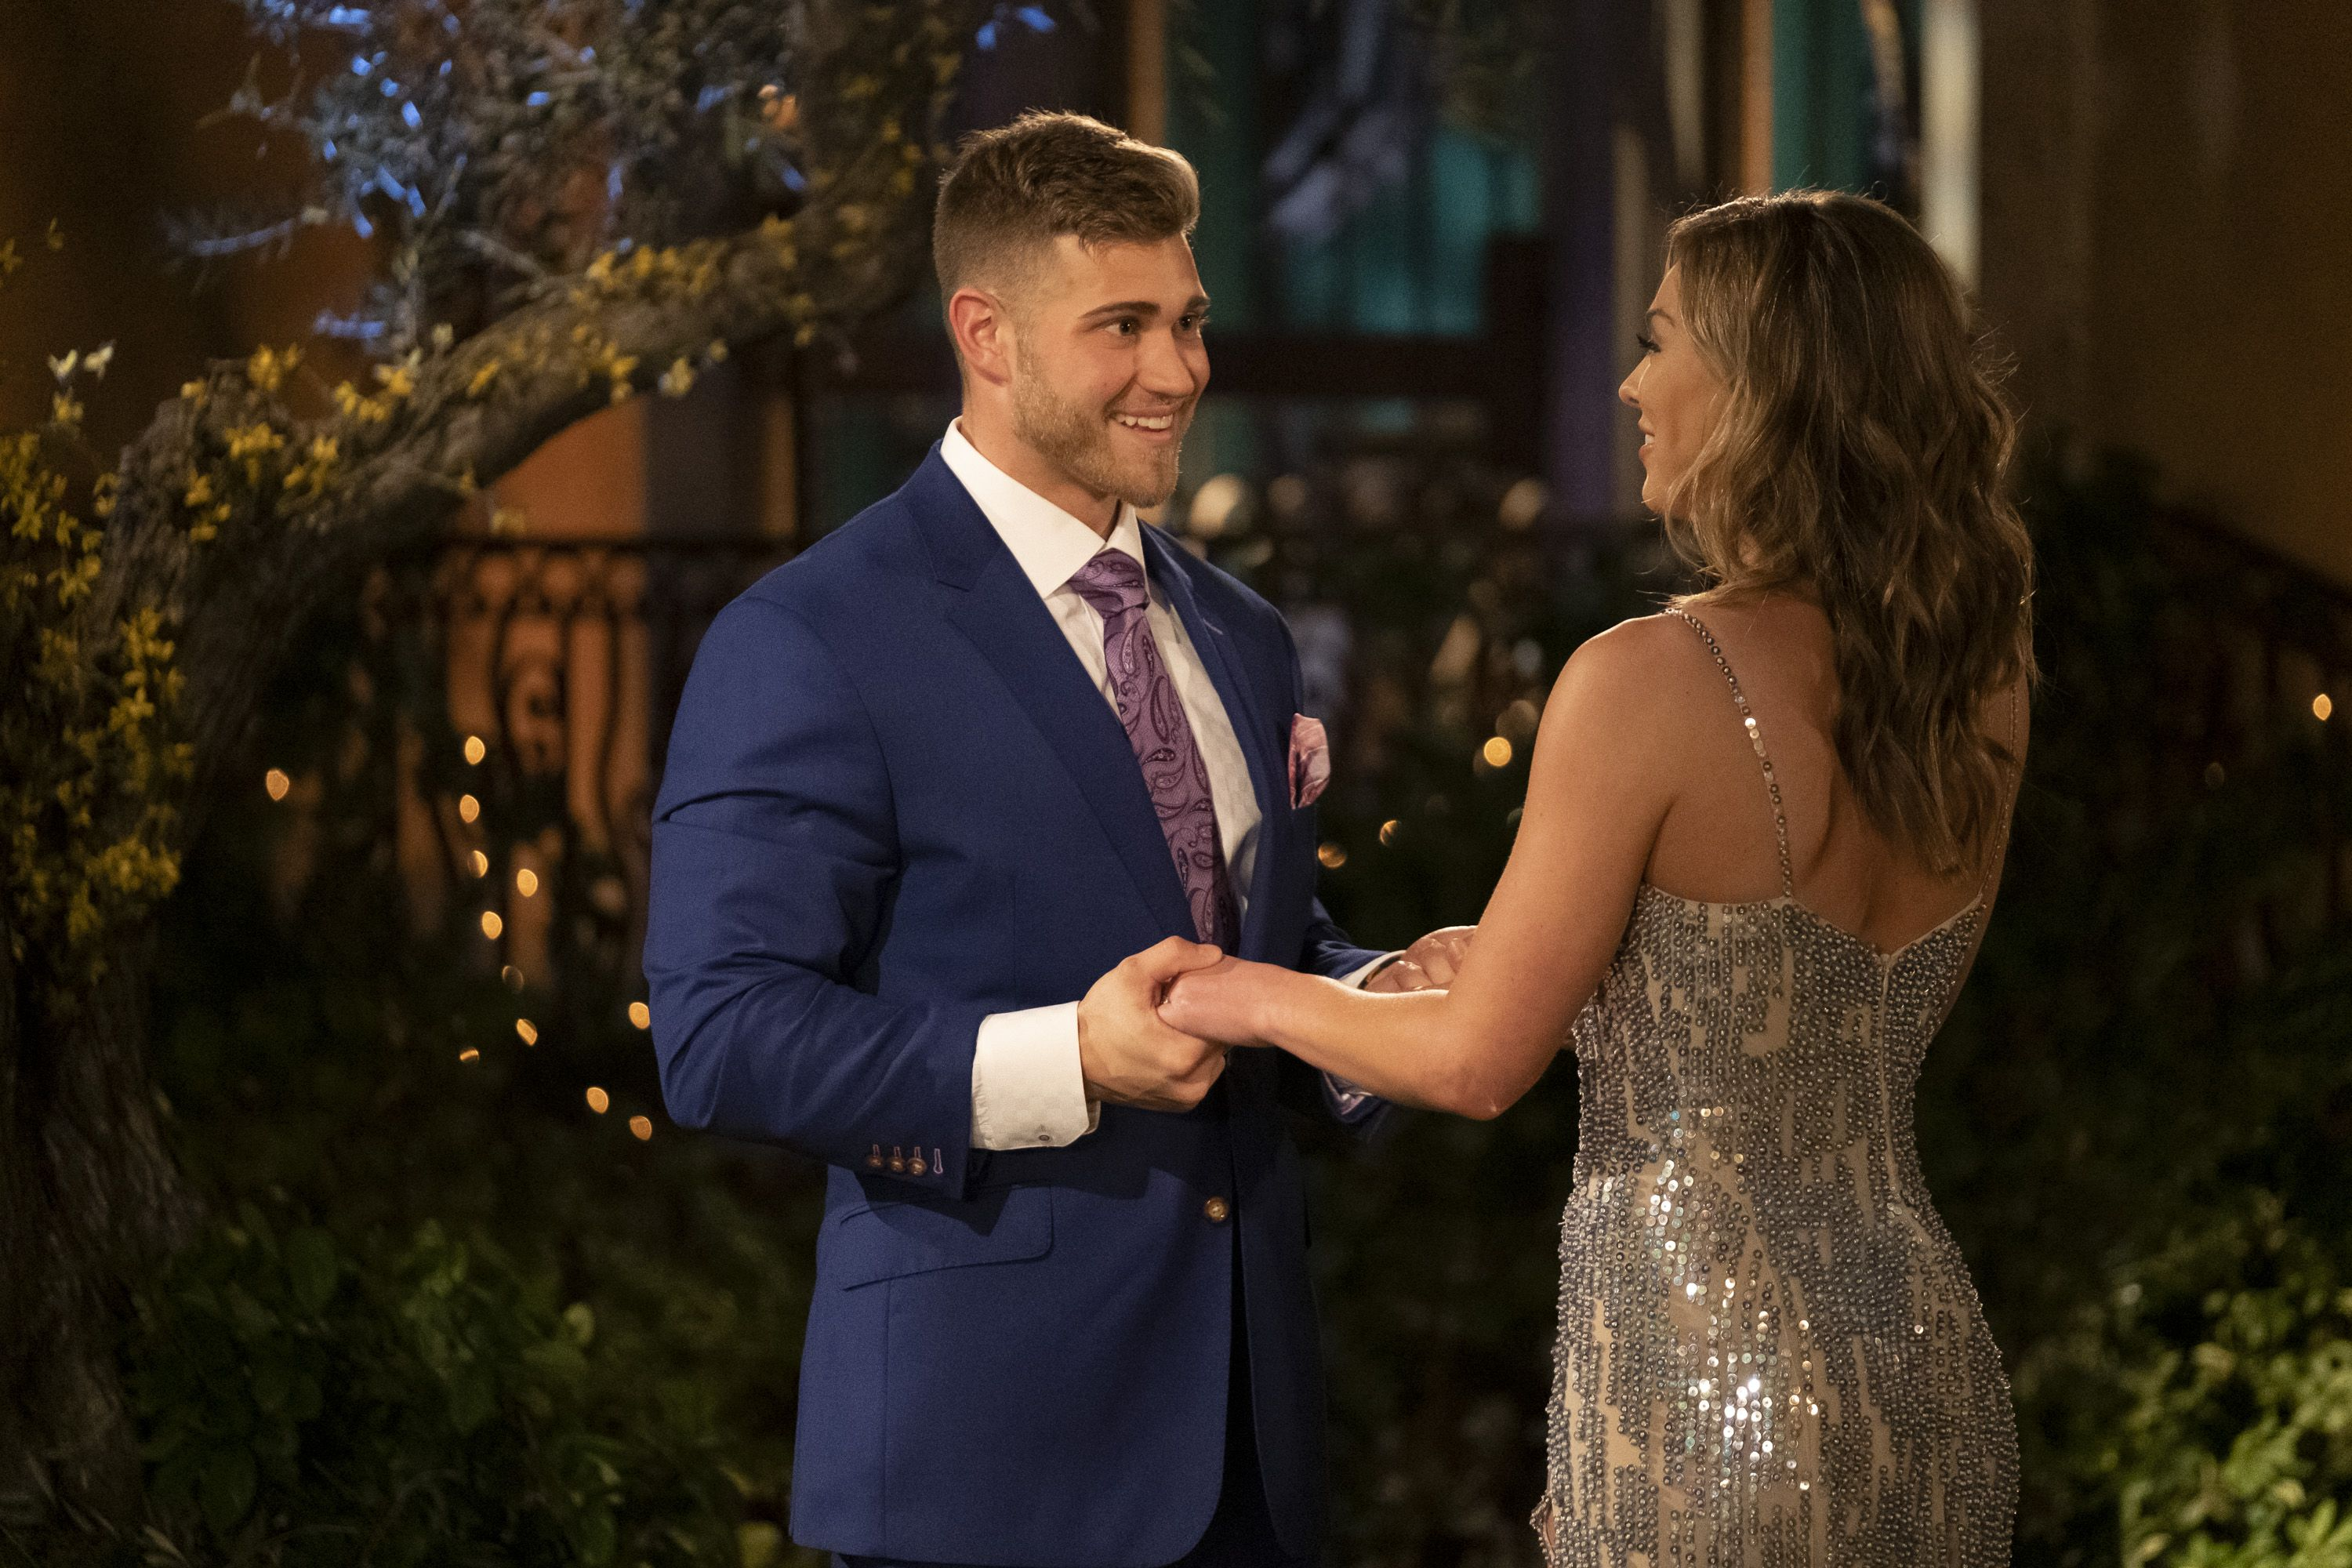 Luke P. From The Bachelorette Just Demonstrated the Worst Possible Way to Handle Rejection